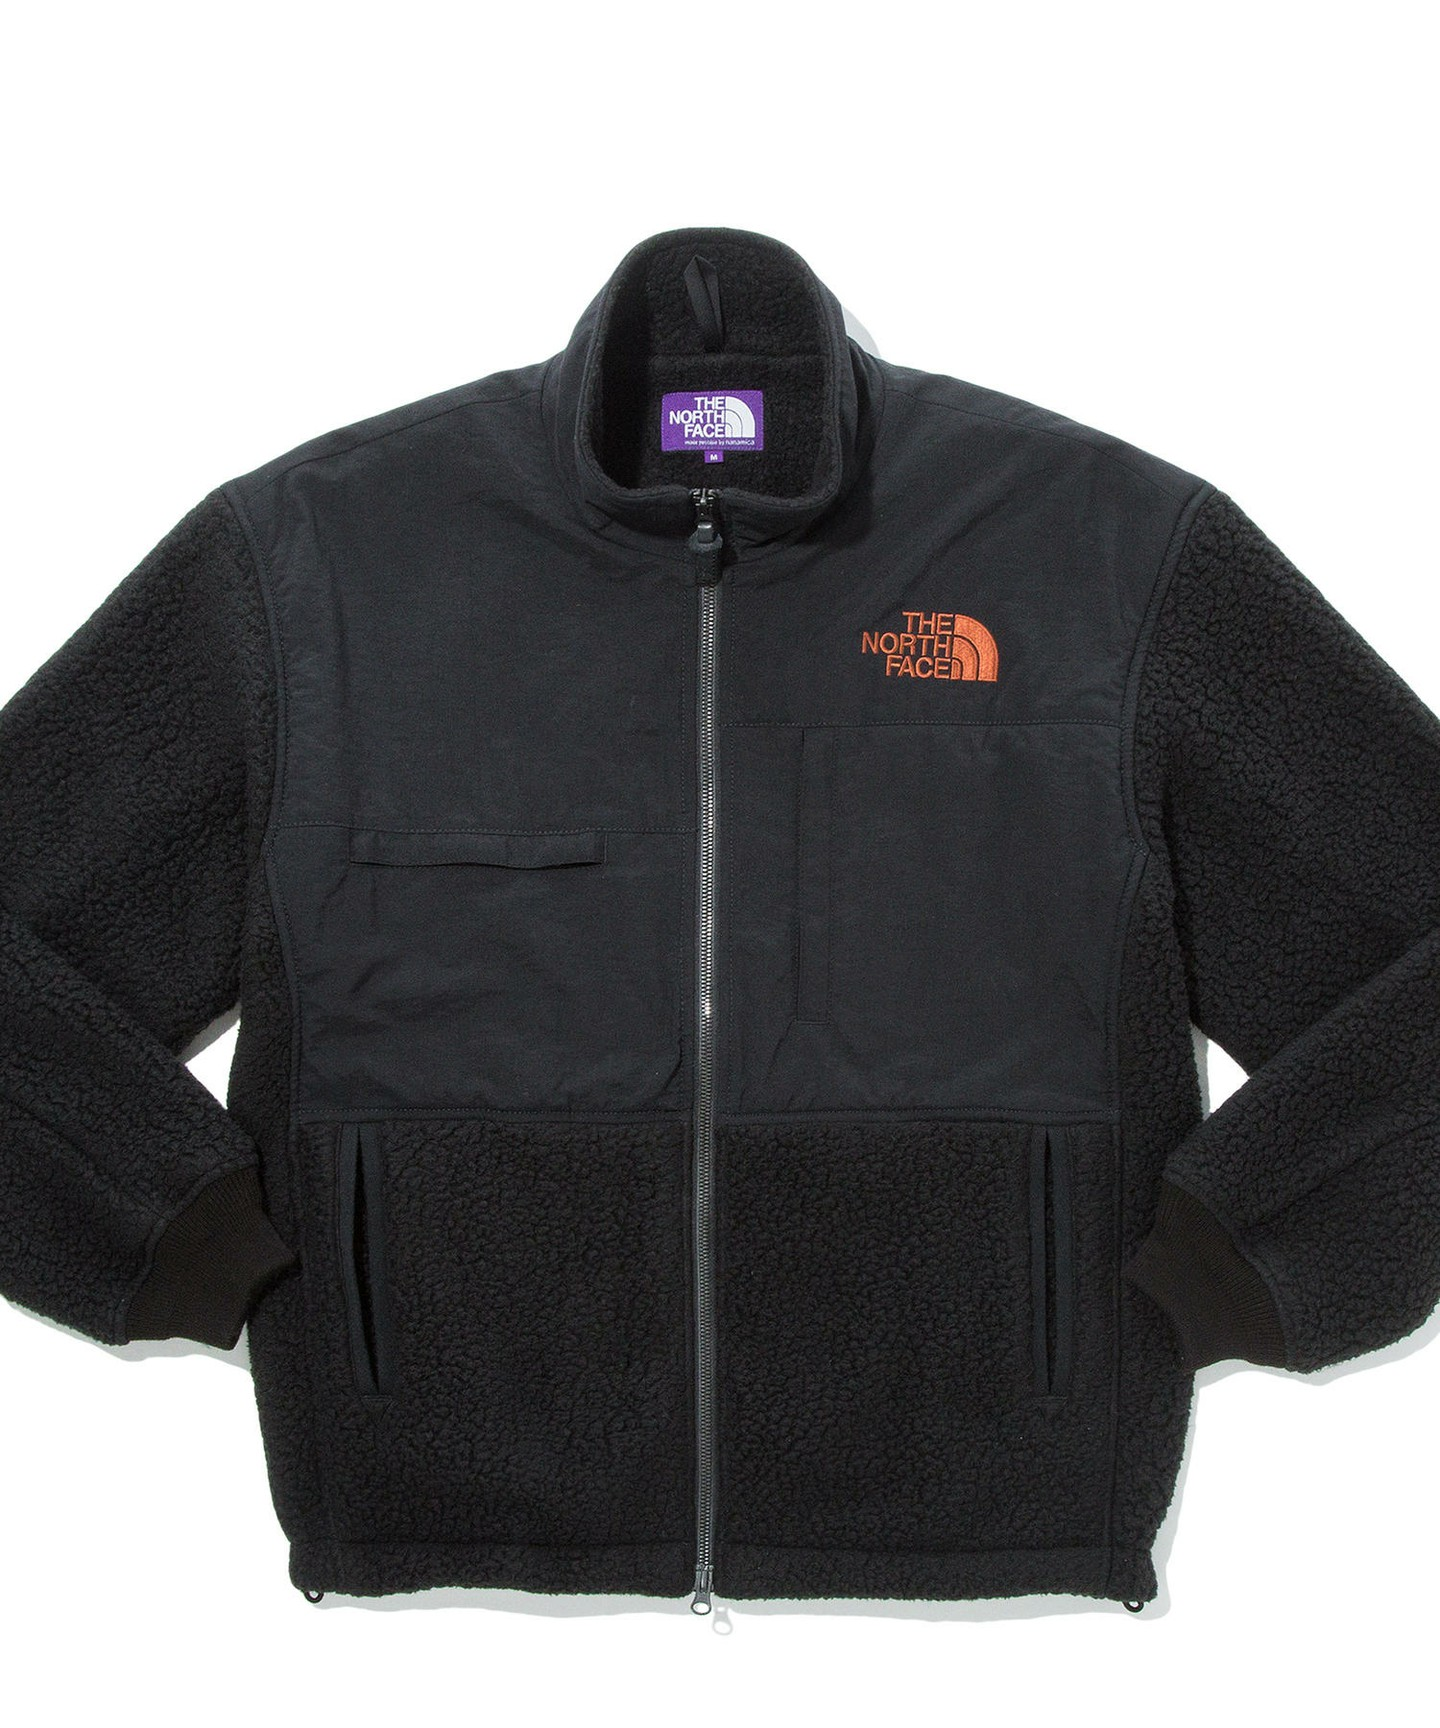 The North Face Purple Label X BEAUTY & YOUTH Bespoke